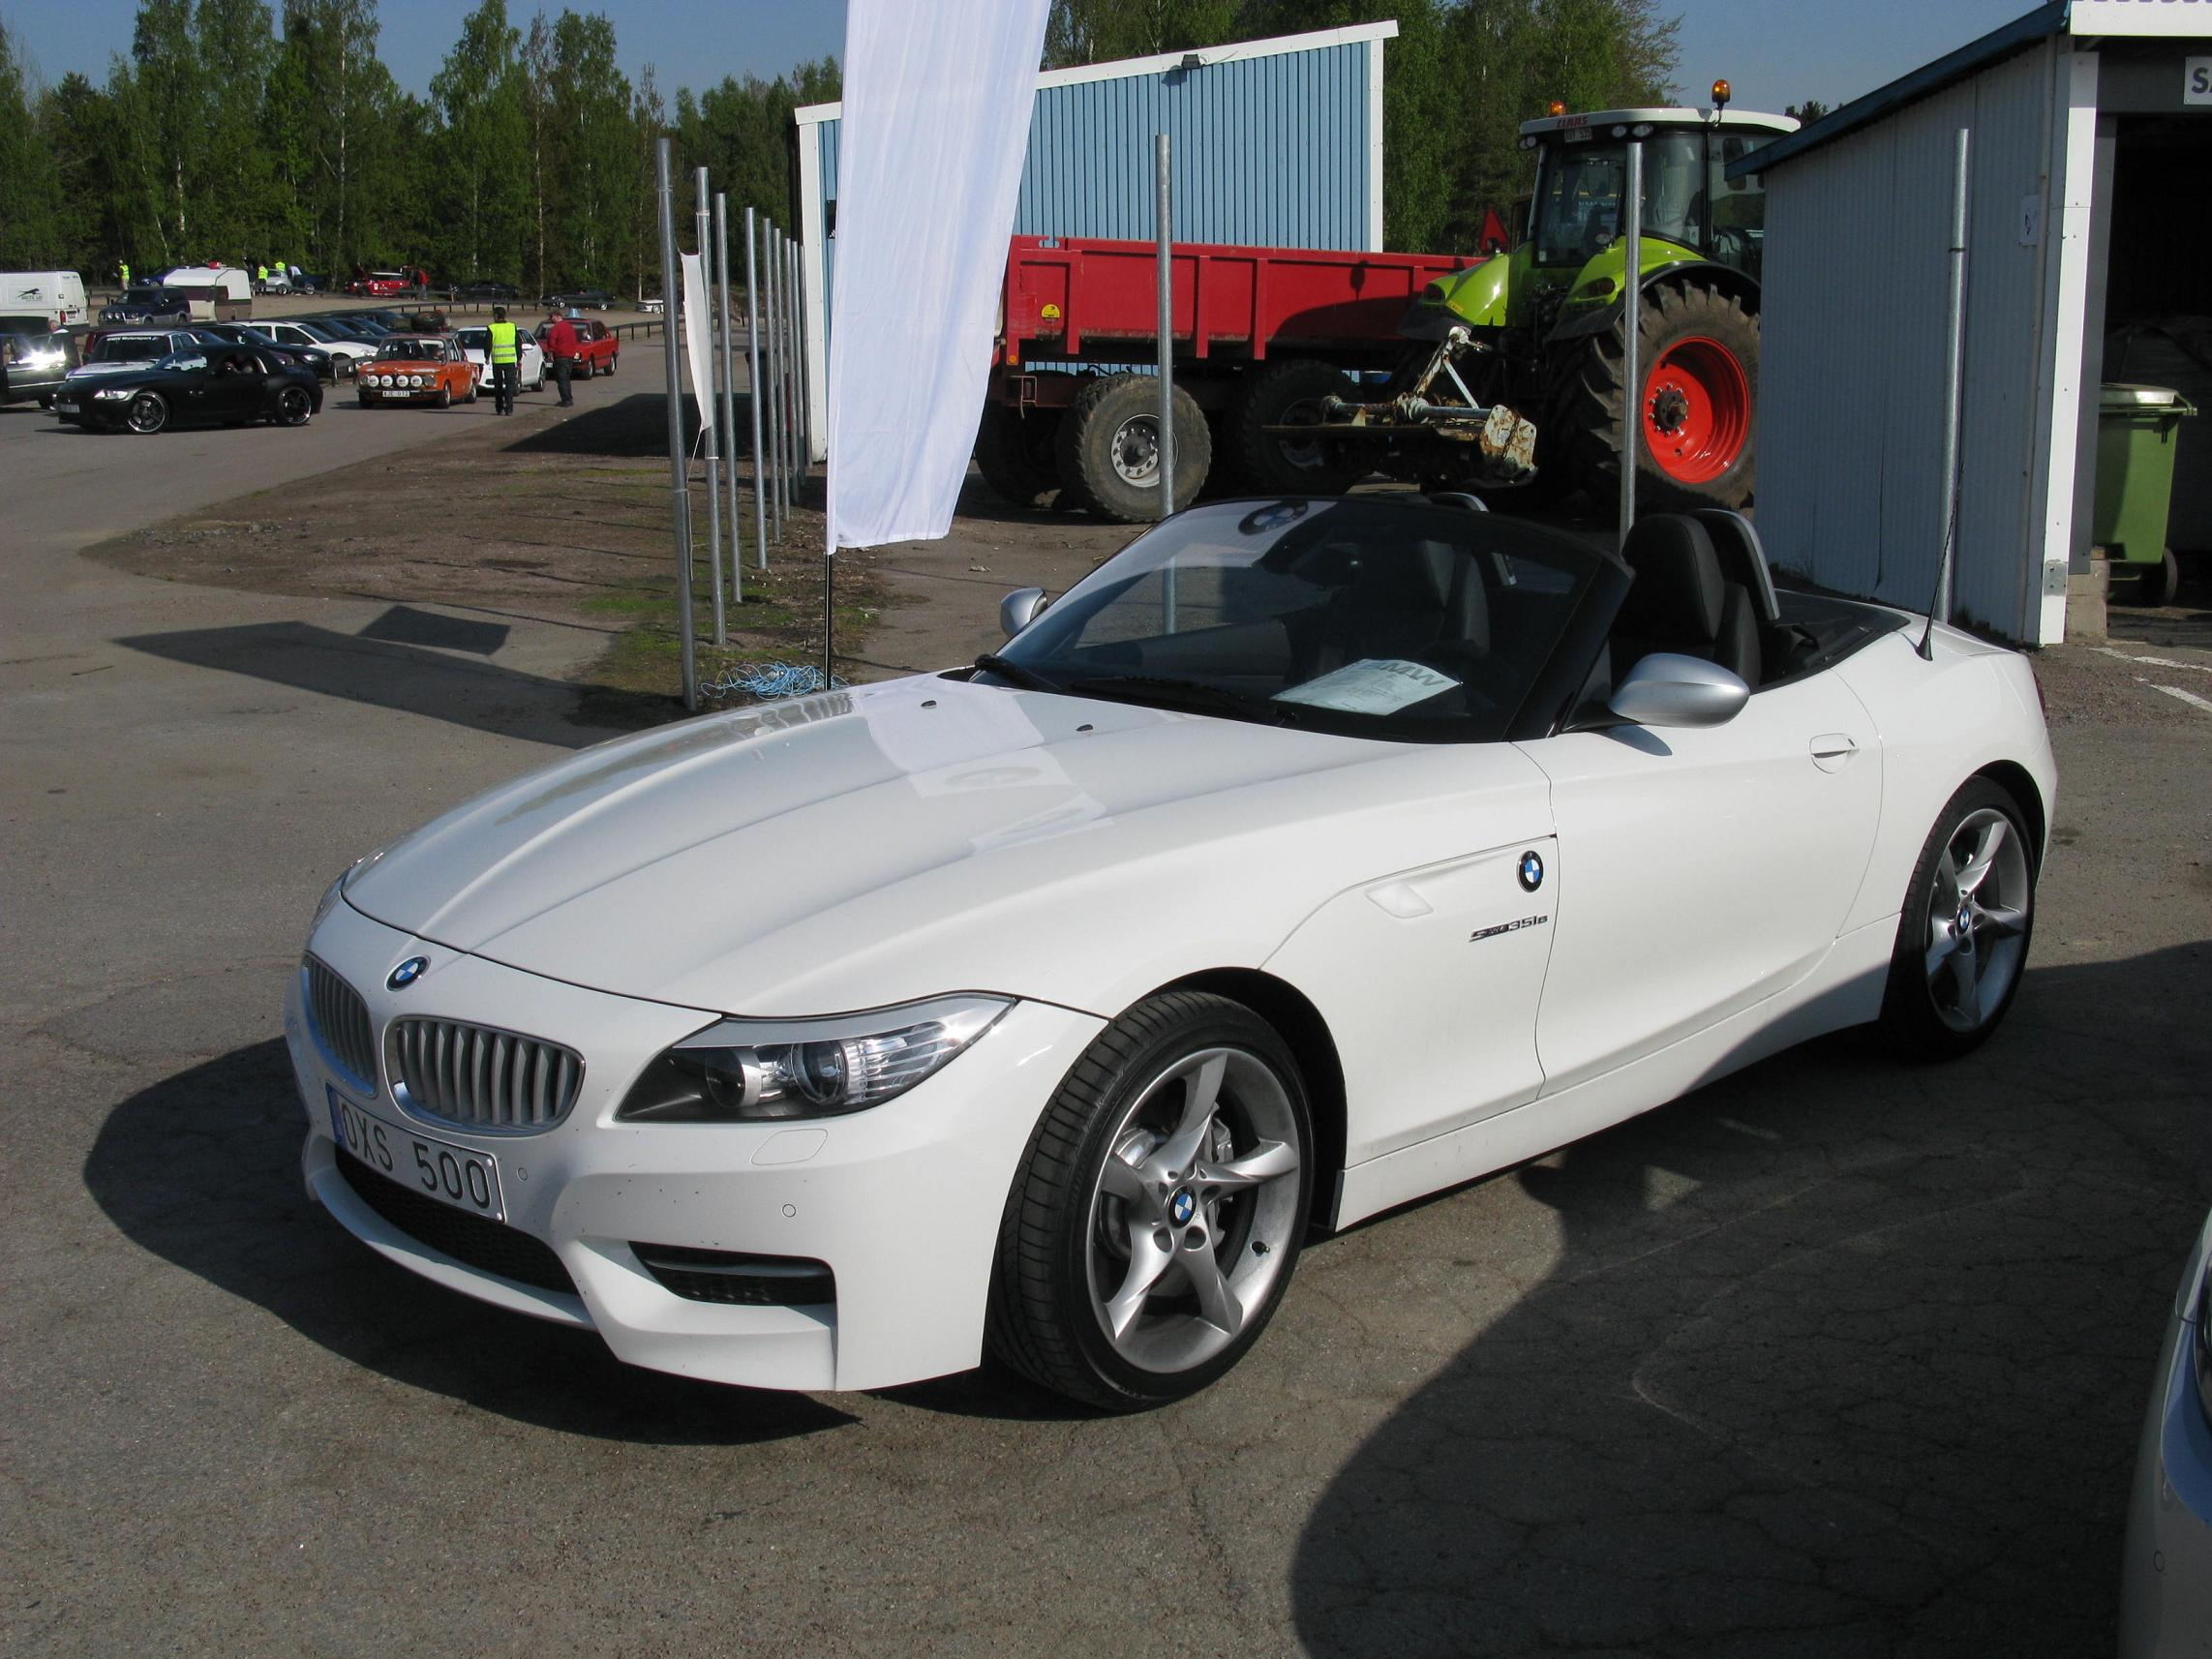 m sale bmw youtube sport for brighton at near sussex watch cars cmc used